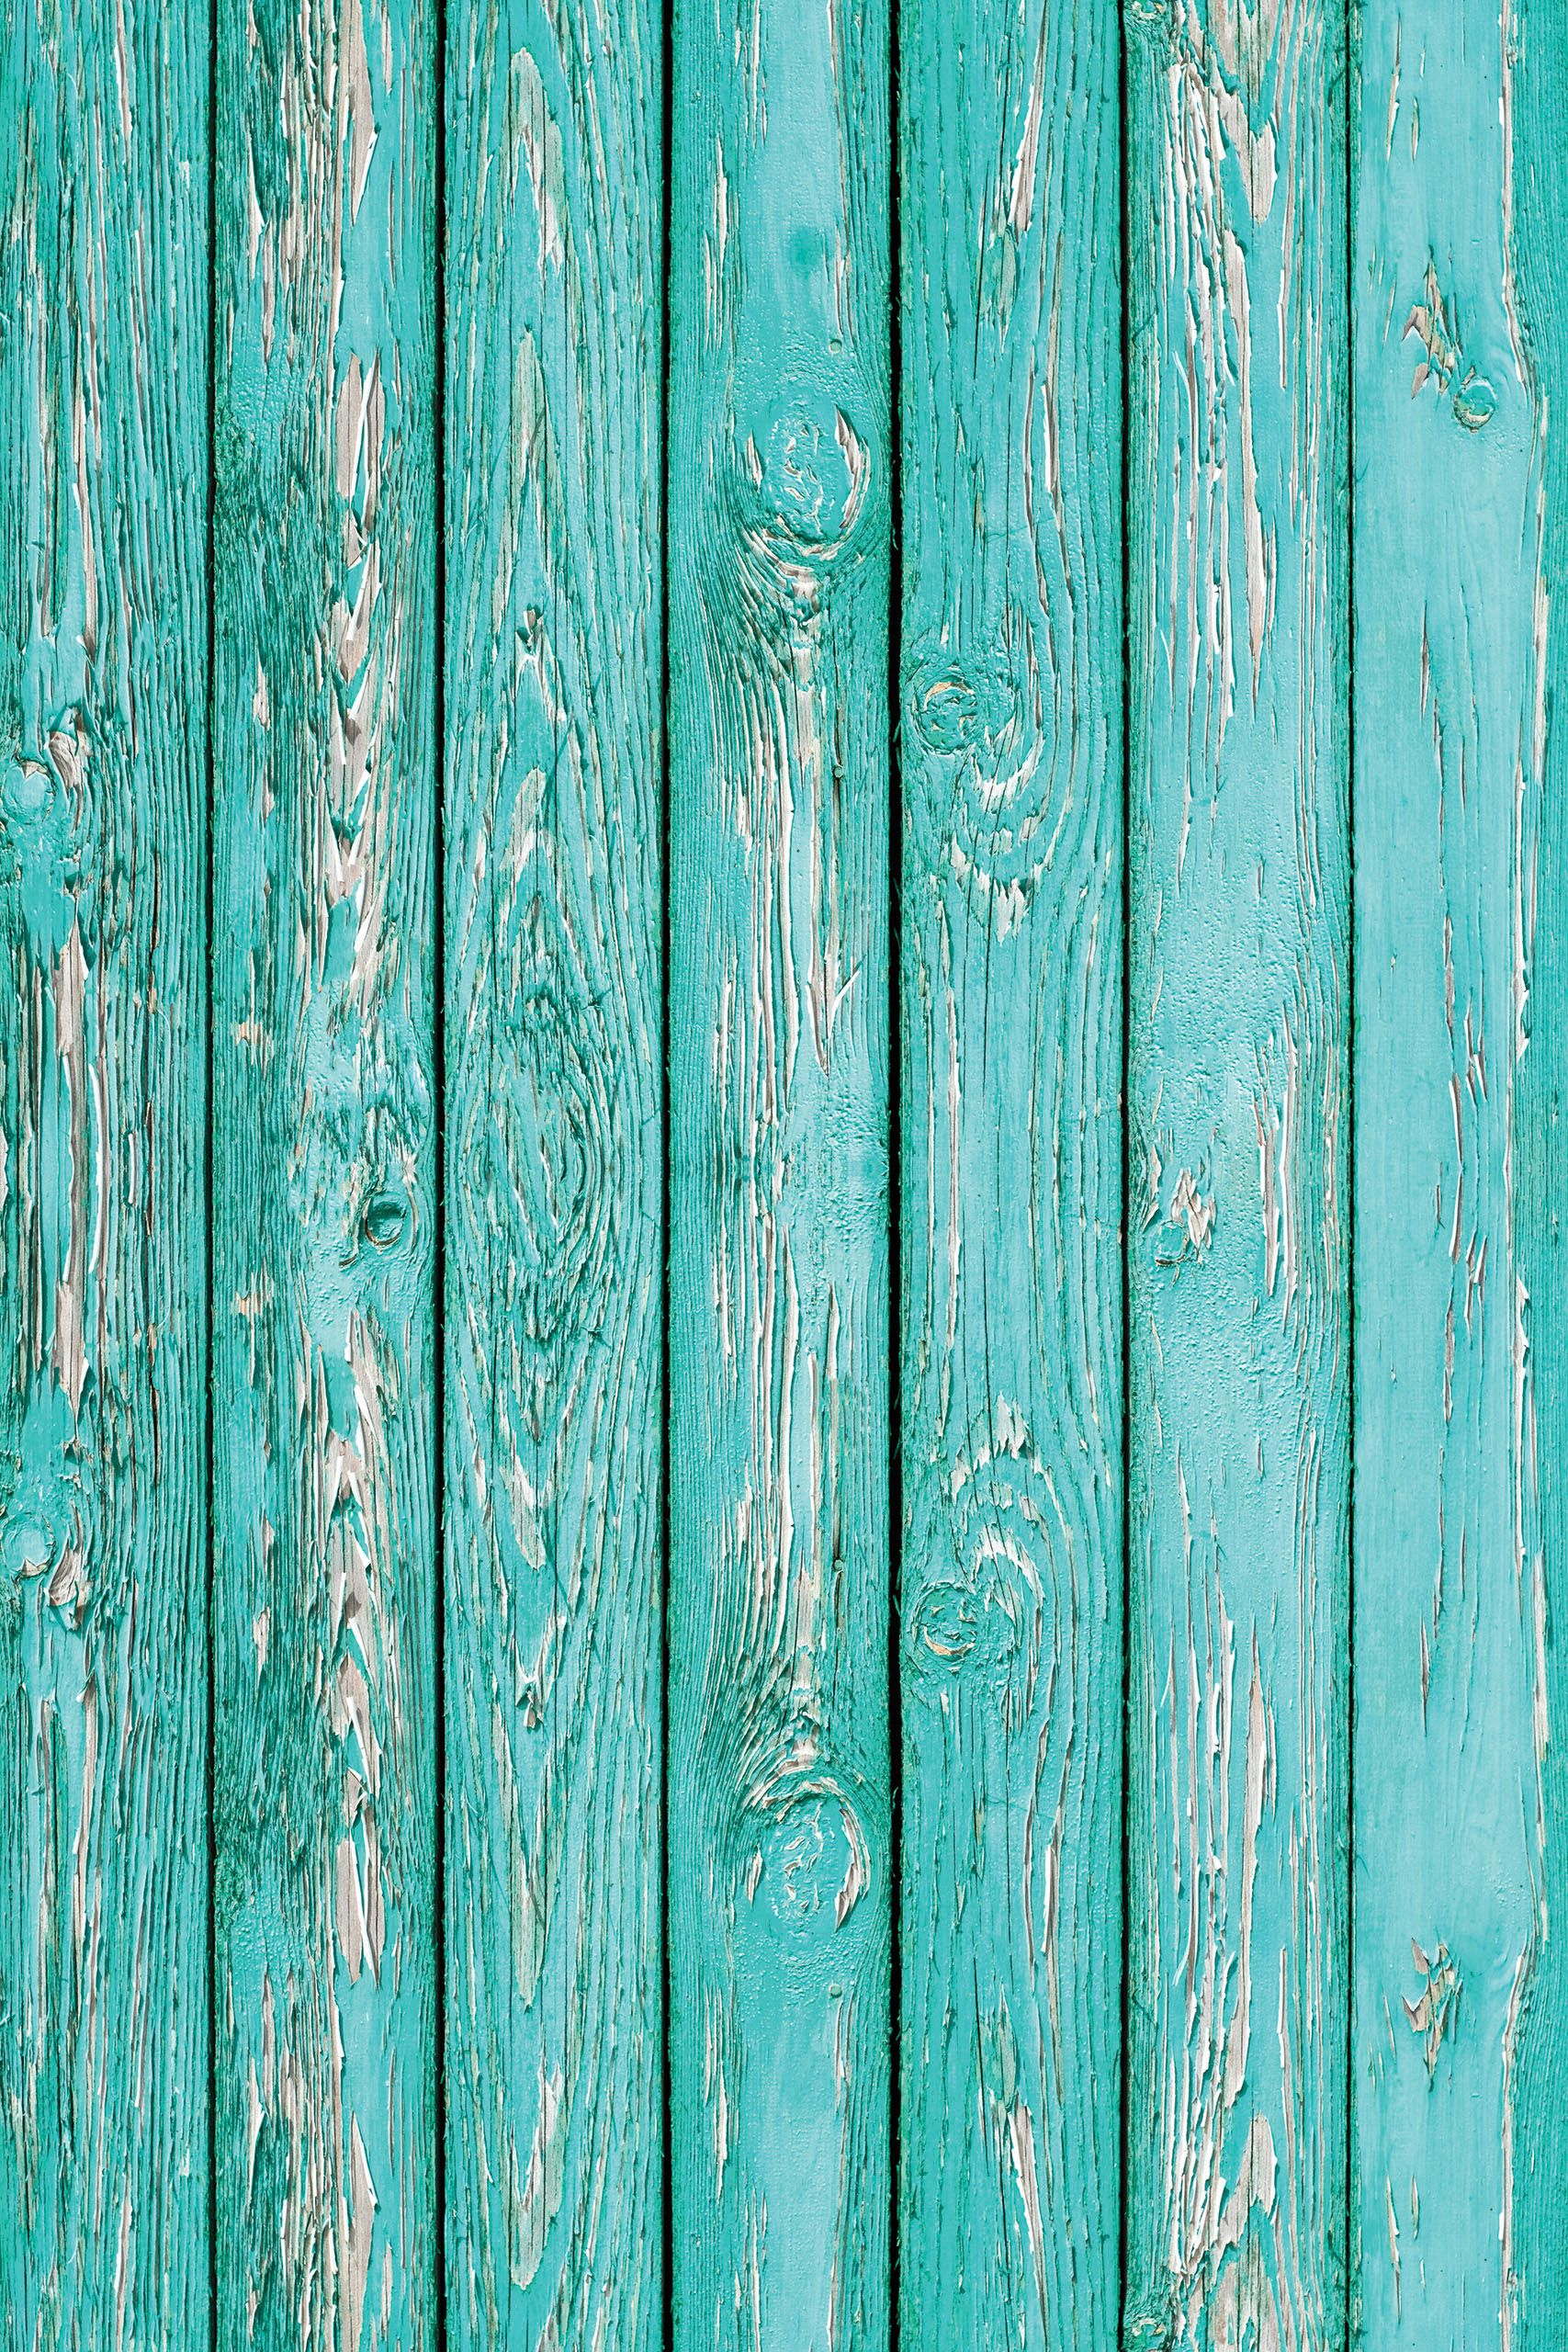 Plank 90 Cm.Old Wooden Planks Turquoise Cracked Paint Used For Summer